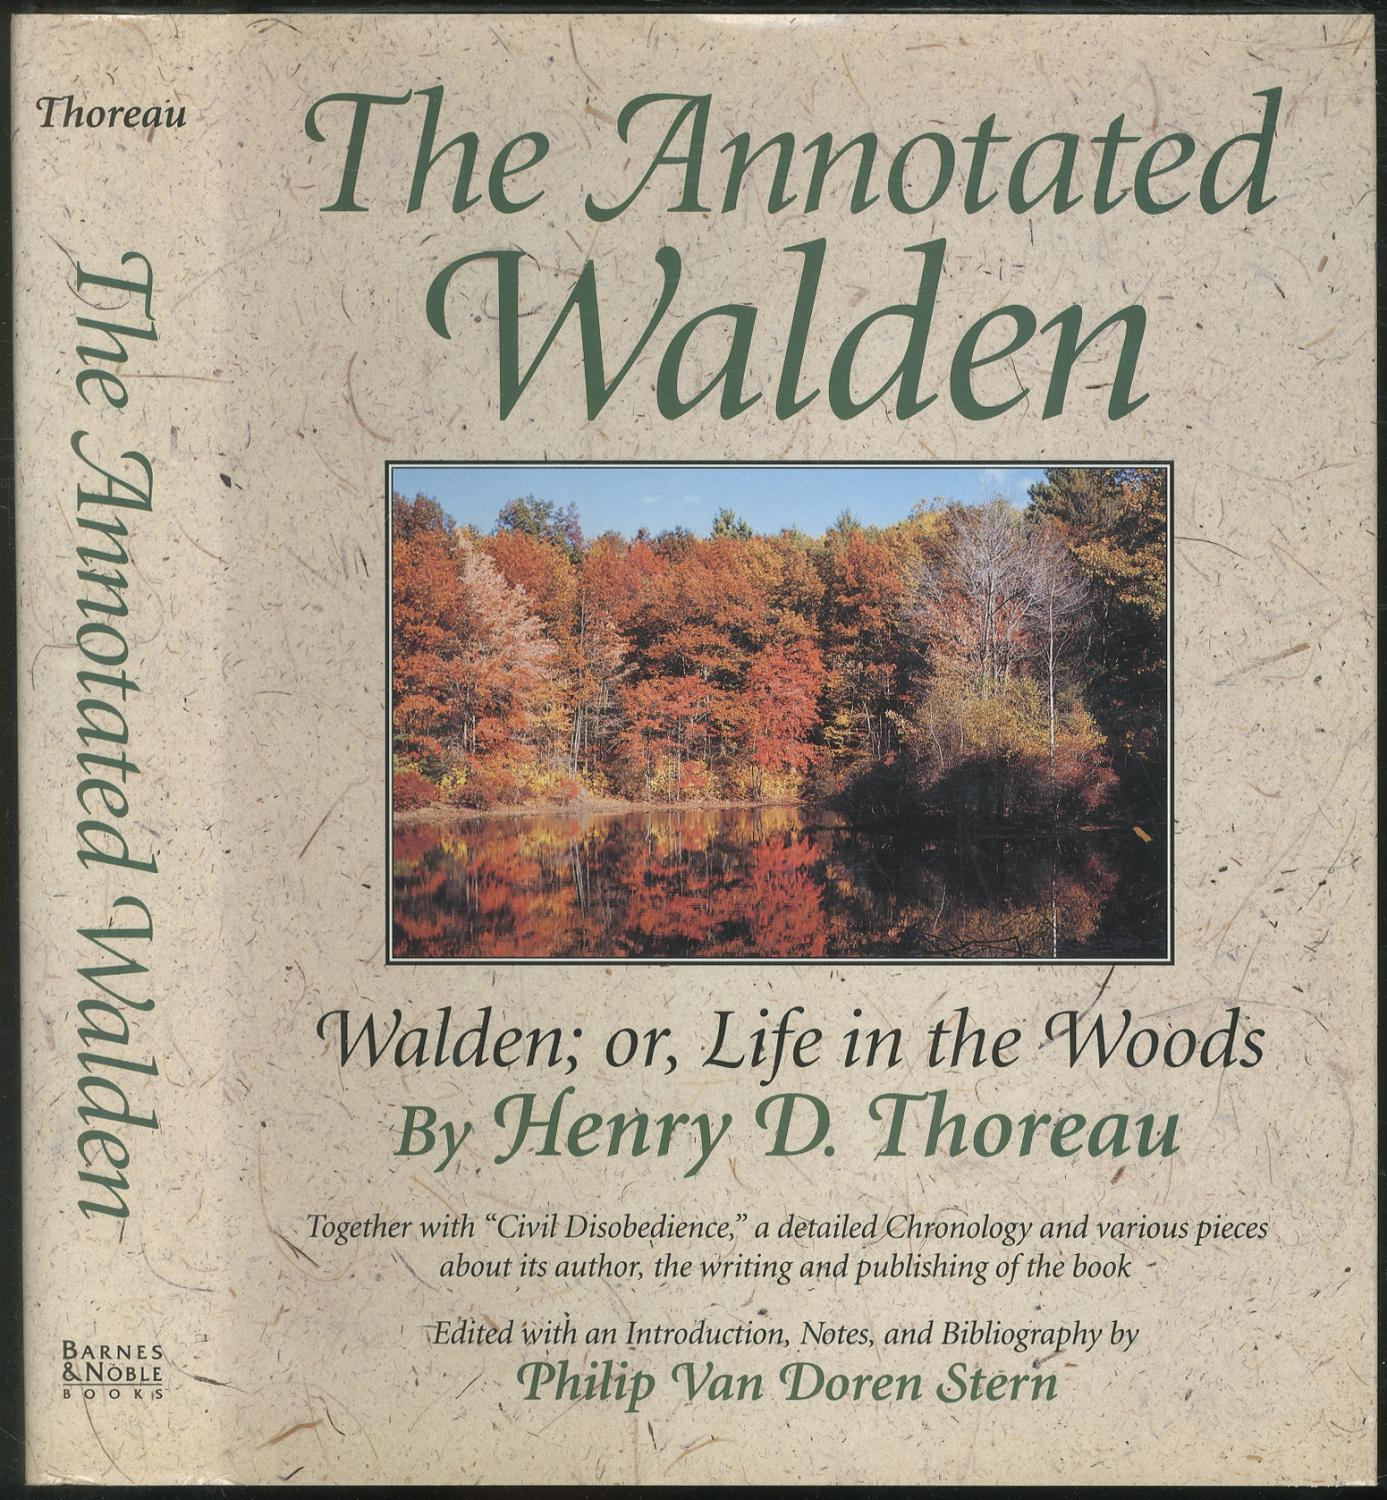 The Annotated Walden: Walden; or, Life in: THOREAU, Henry D.